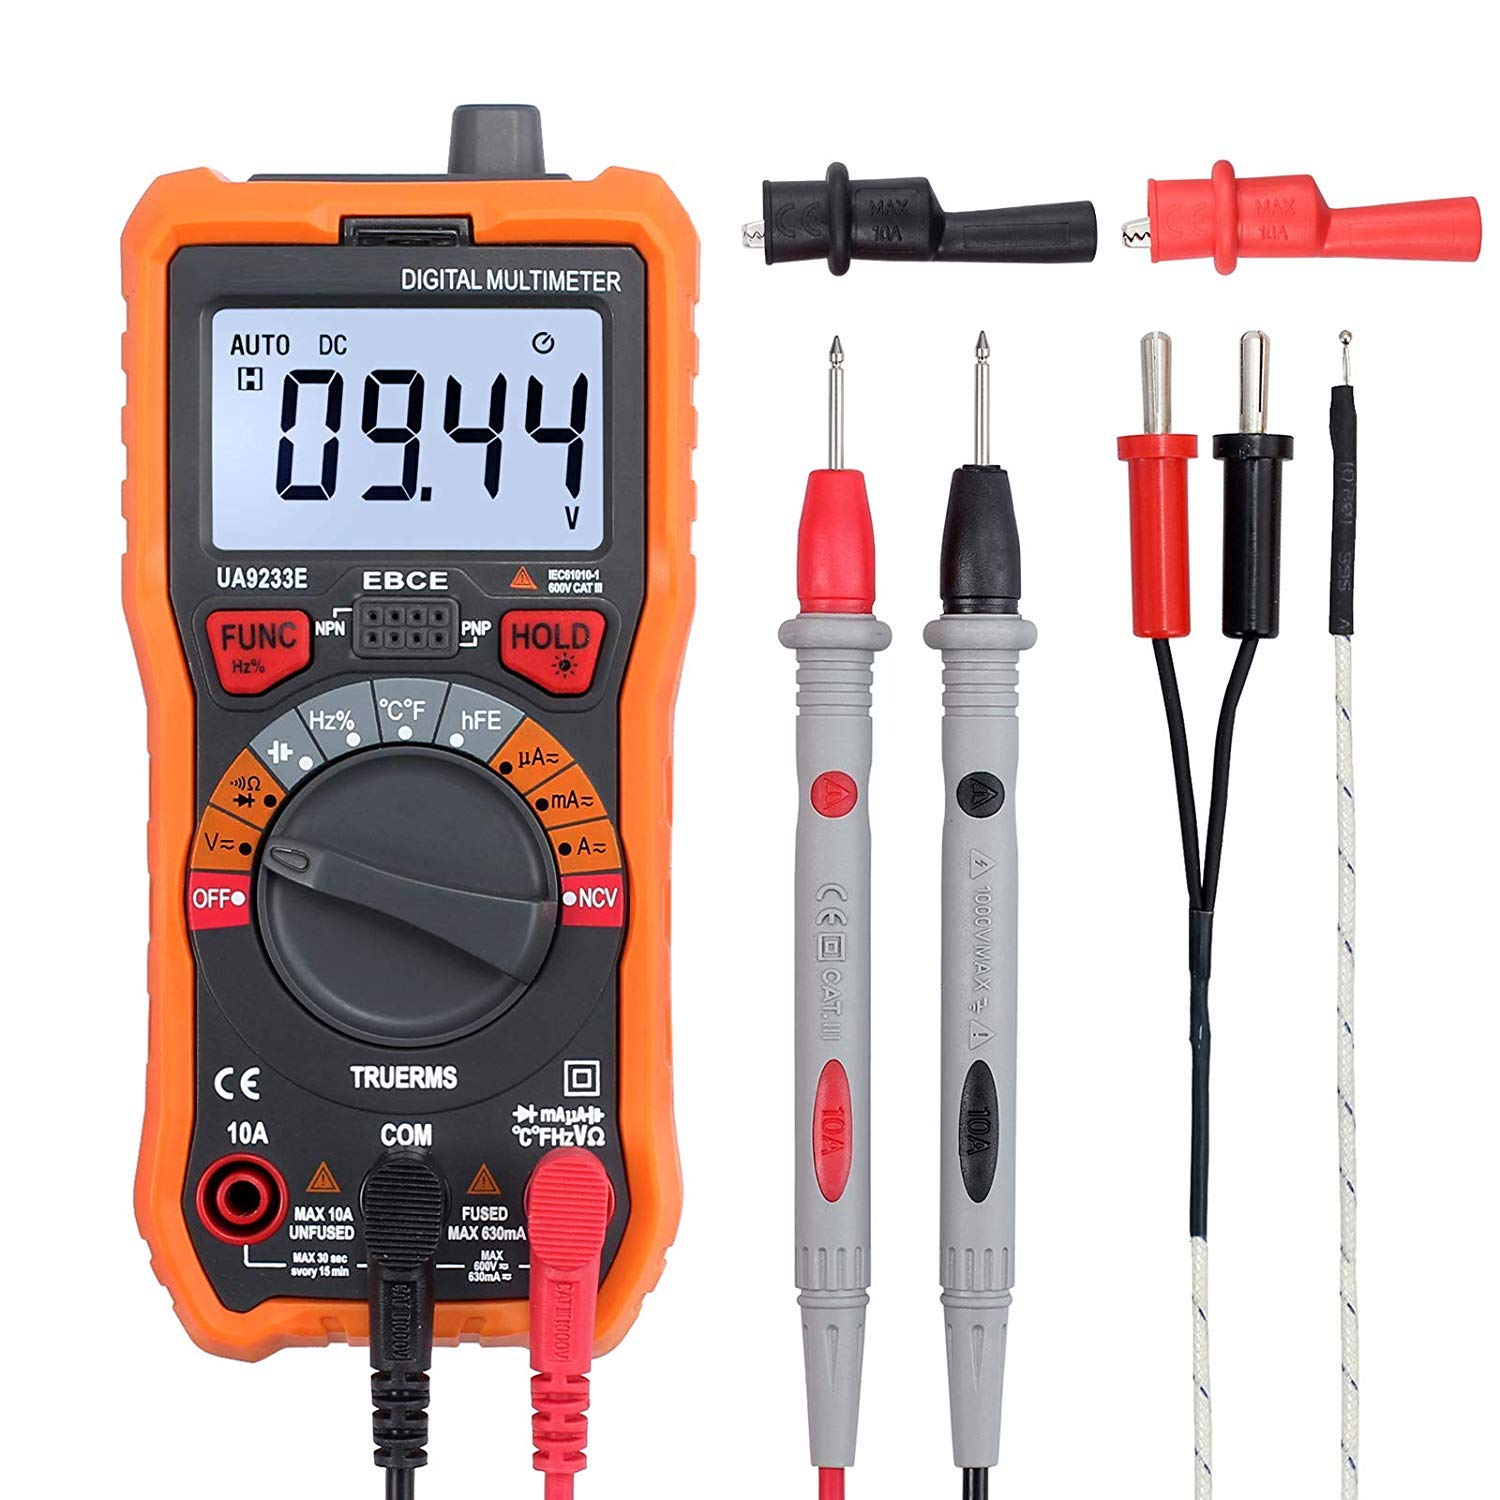 AUTOUTLET Digital Multimeter 6000 Counts True RMS Auto Ranging NCV AC/DC Voltage Current Resistance Temperature Backlit LCD Multi-Tester Probe & Alligator Clips